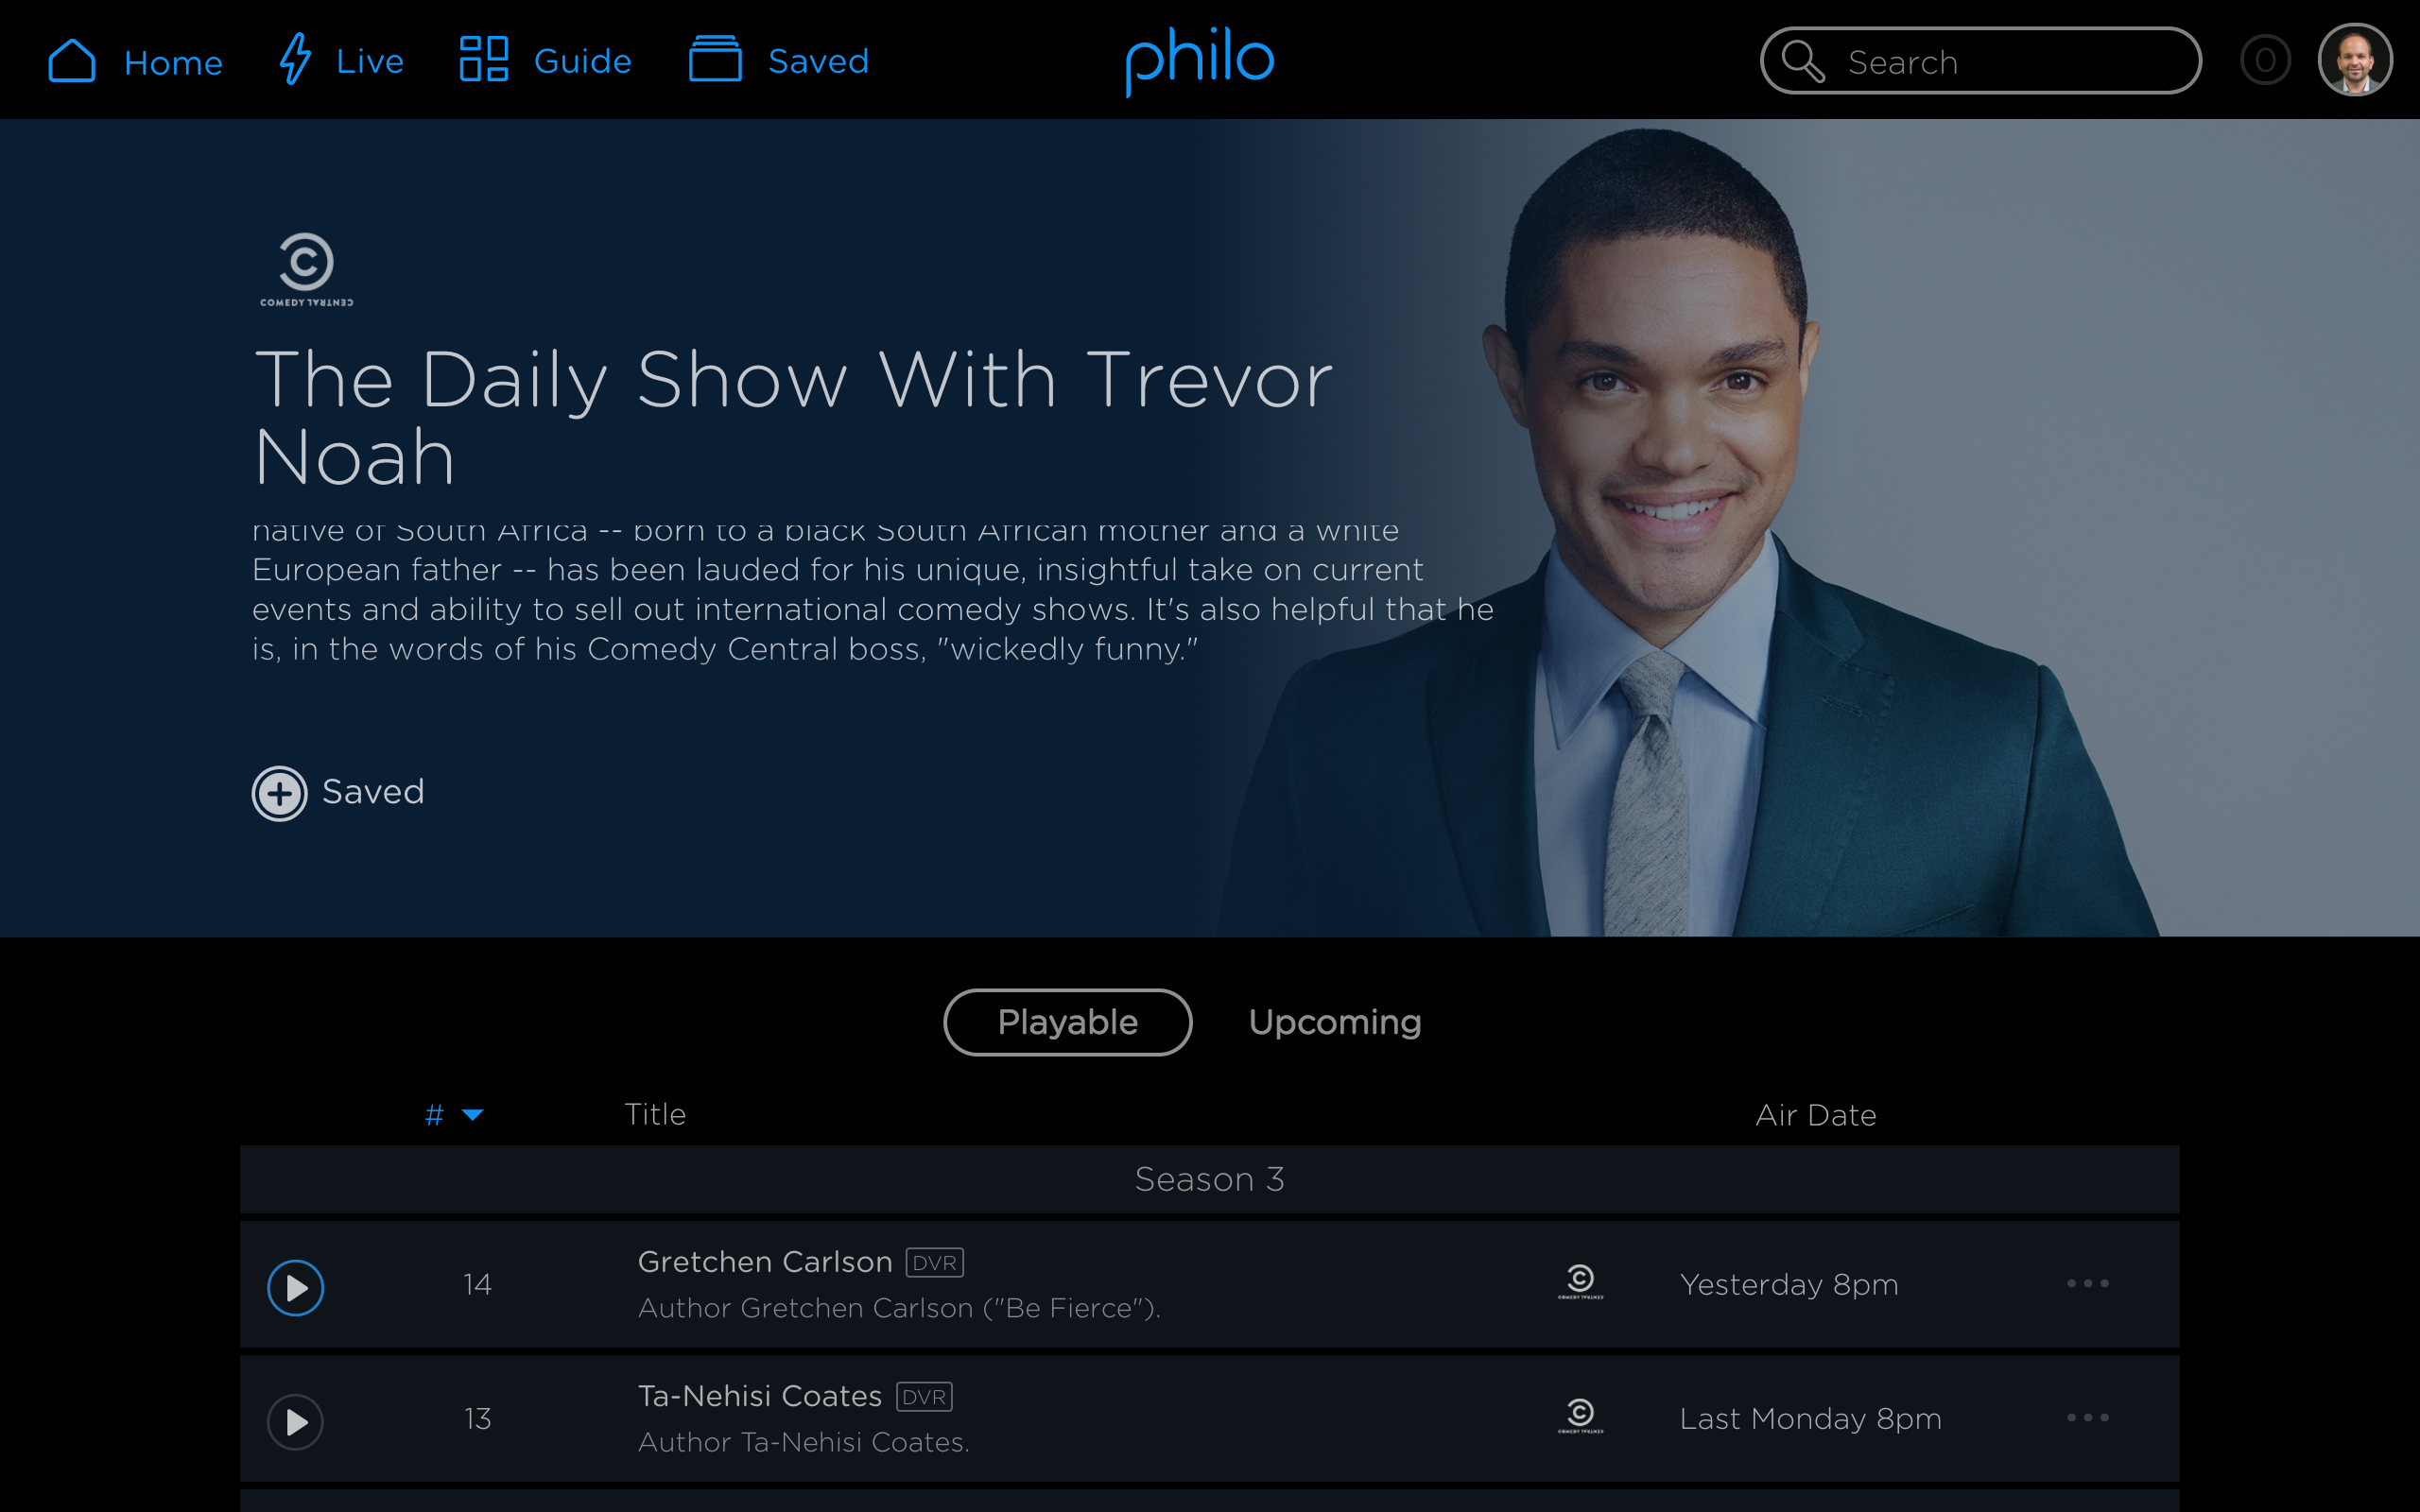 philo-show-page-thedailyshow